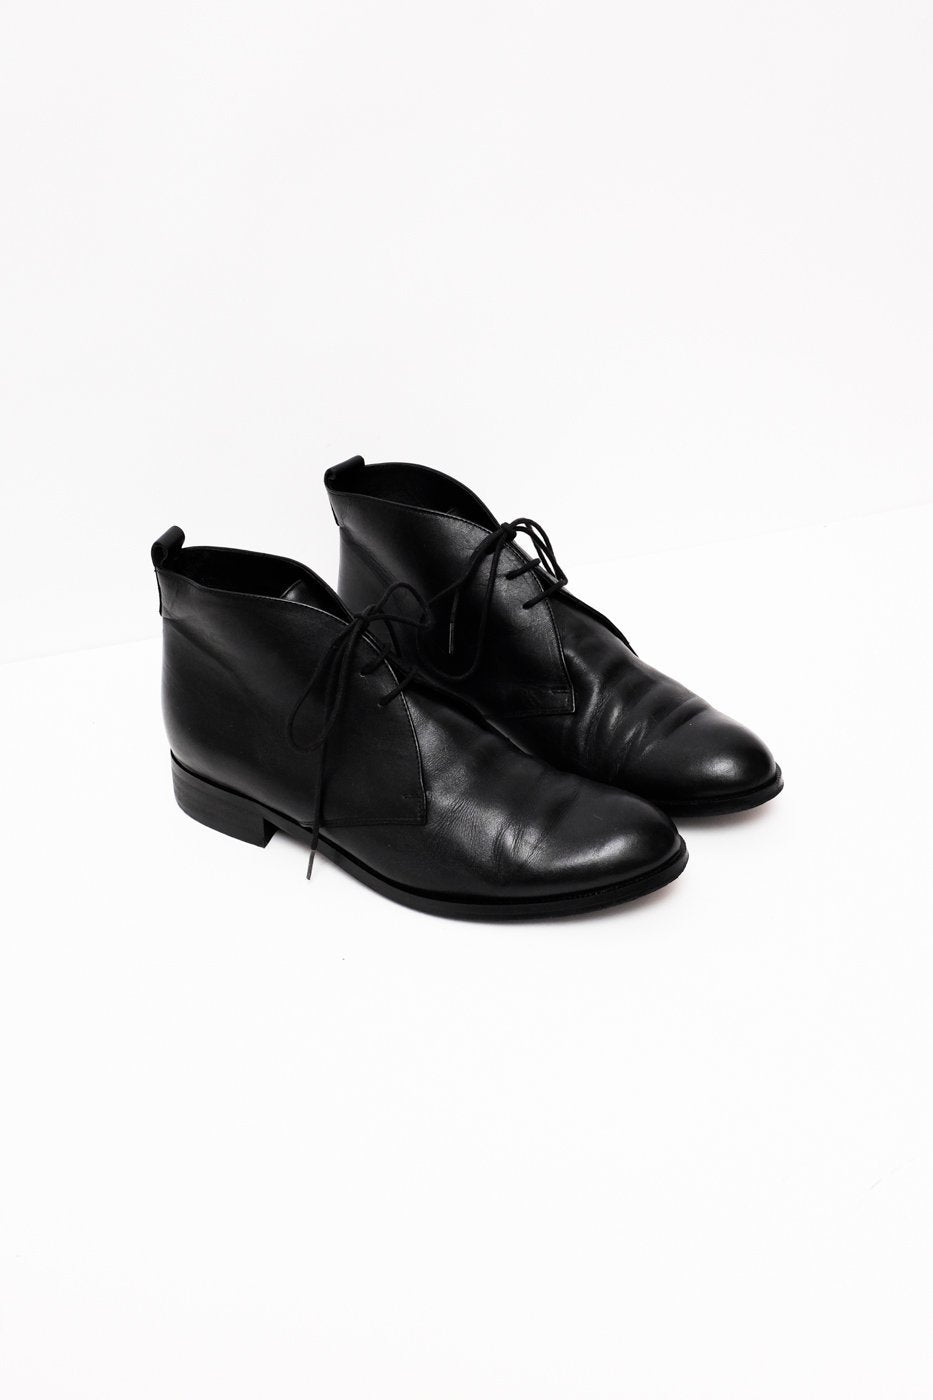 0287_BLACK 39 SIMPLE LEATHER LACE UPS